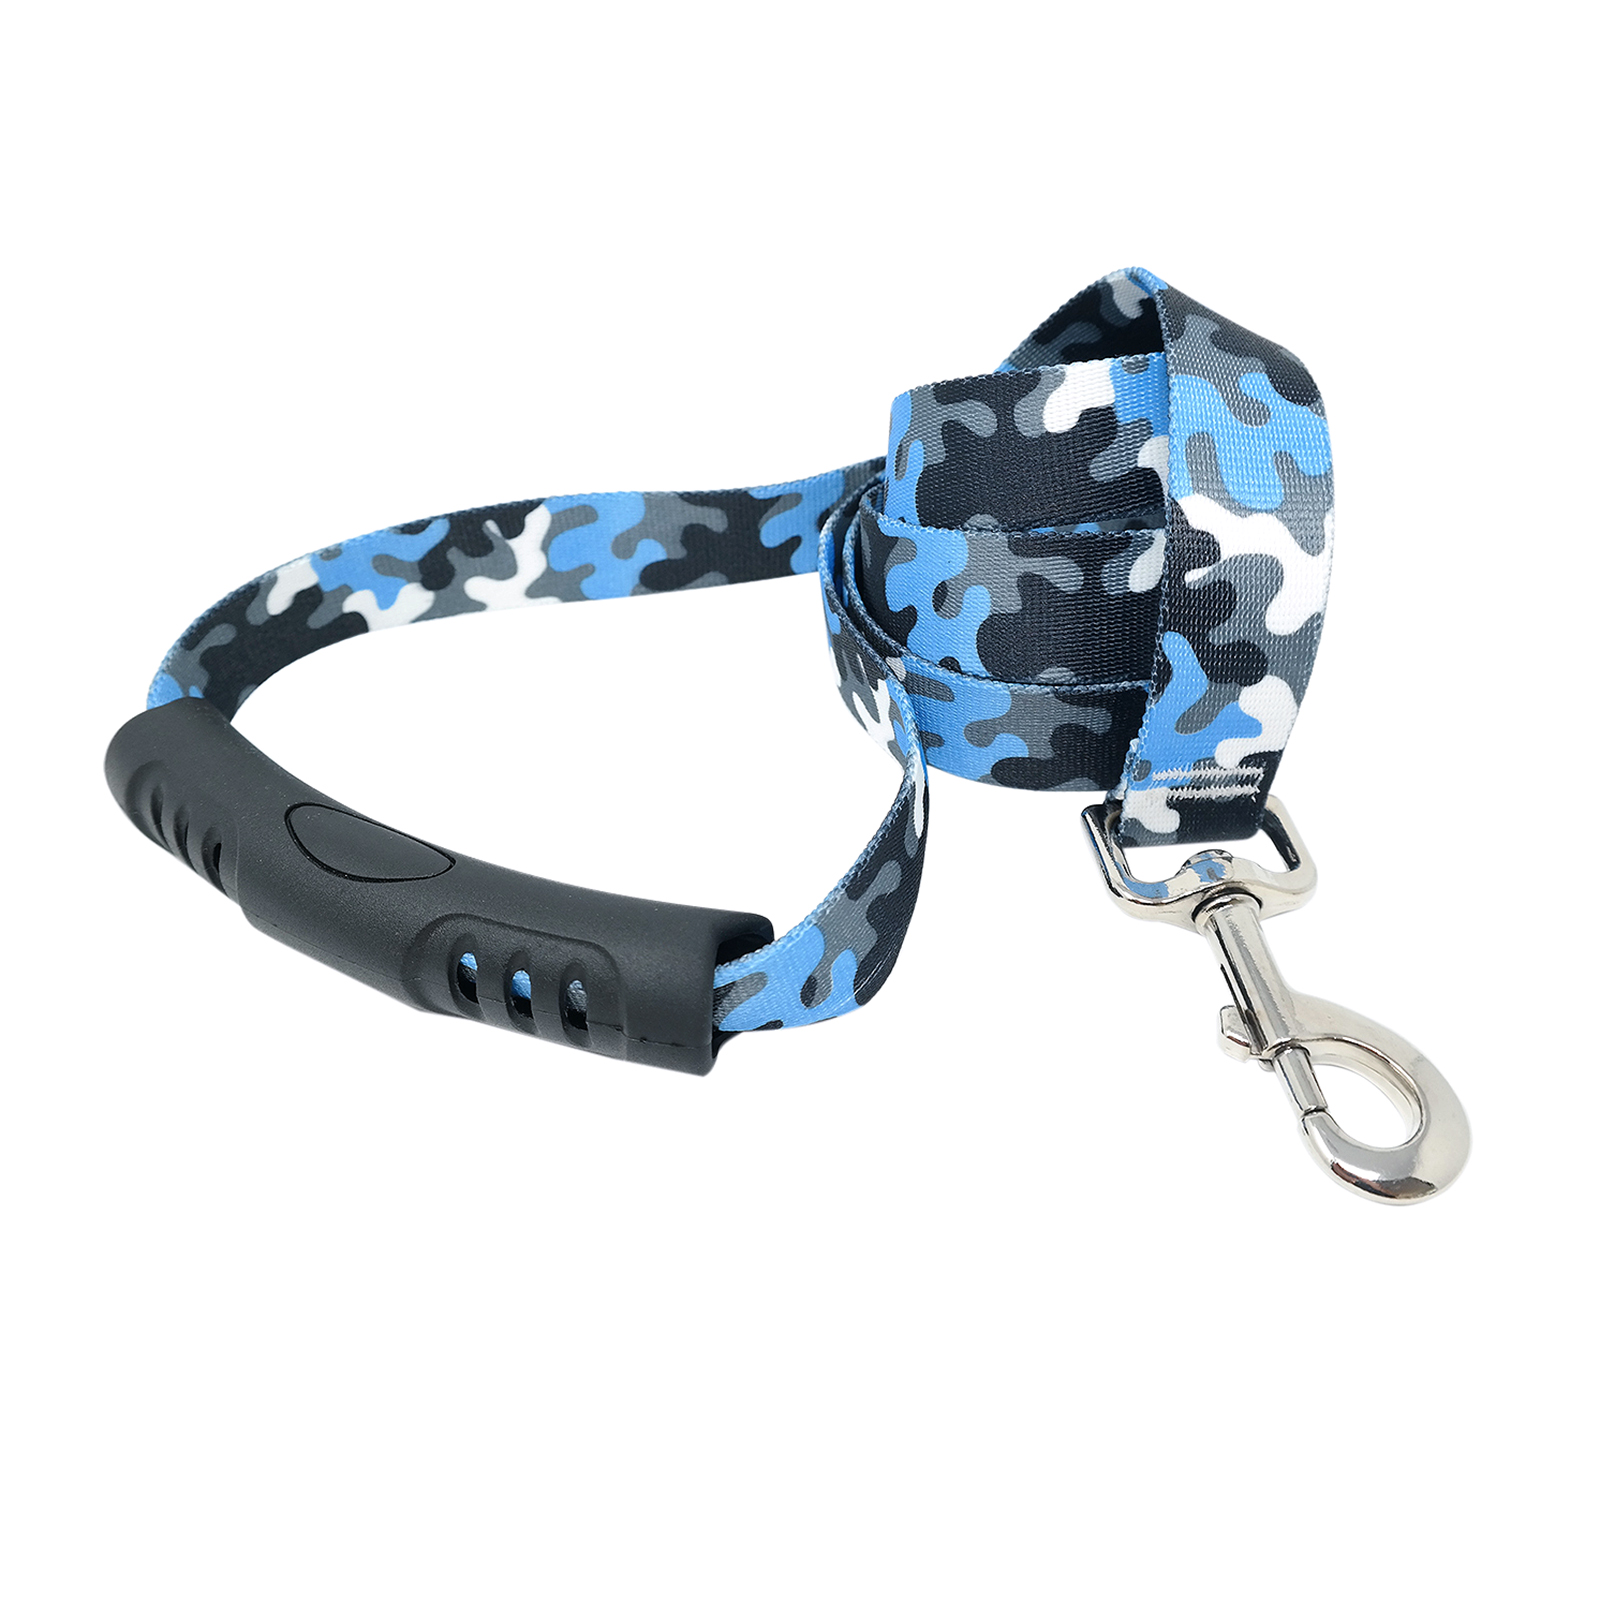 Light Blue & Black Camo EZ-Lead